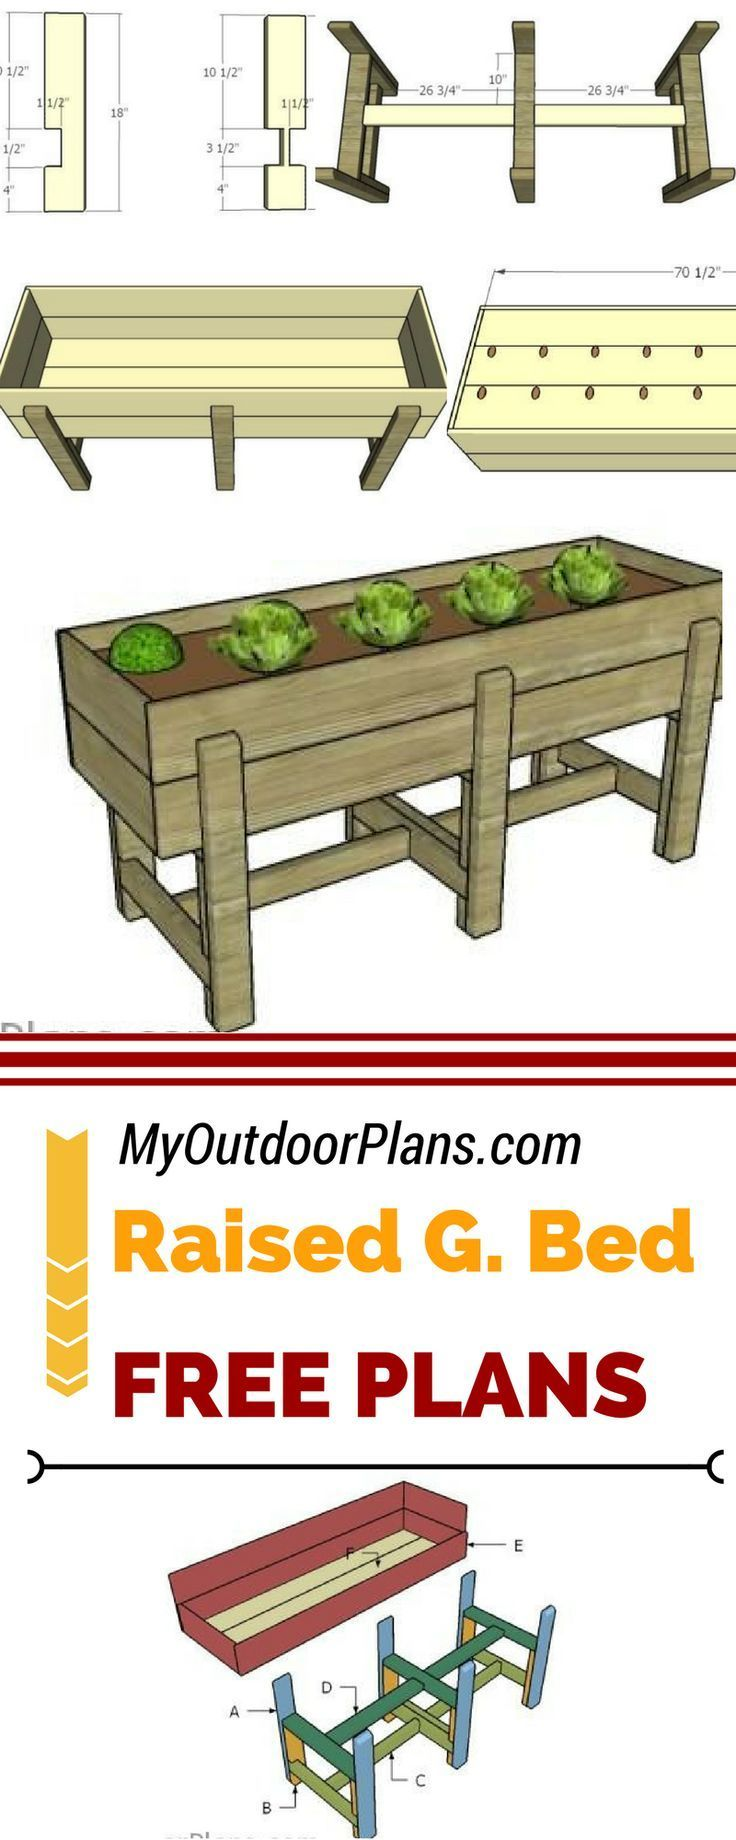 Waist High Raised Garden Bed Plans (With images) | High ...